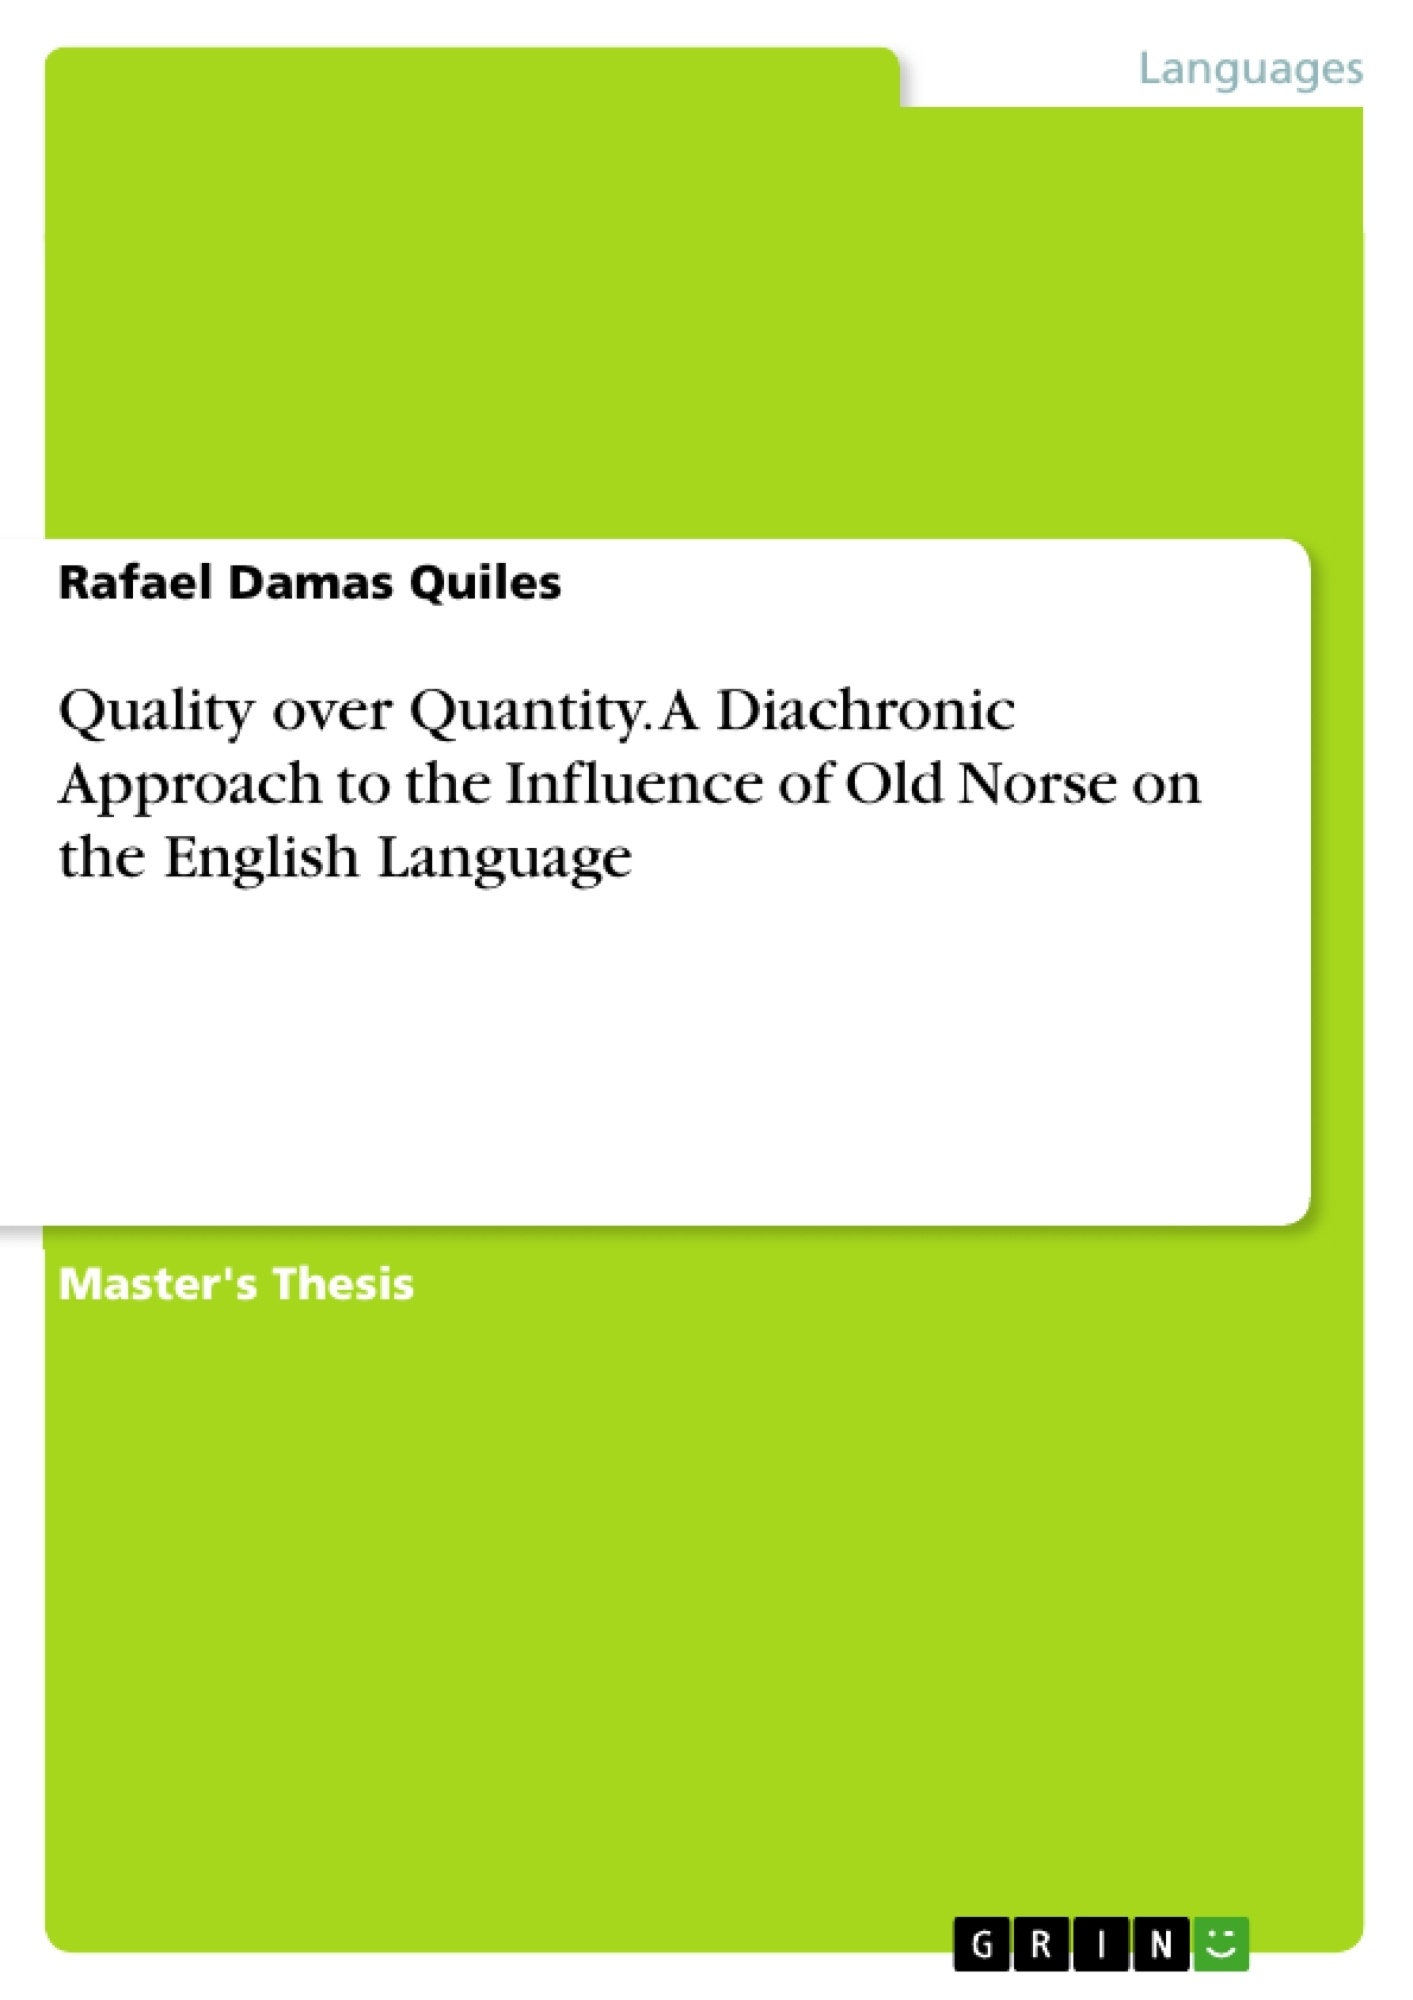 Title: Quality over Quantity. A Diachronic Approach to the Influence of Old Norse on the English Language